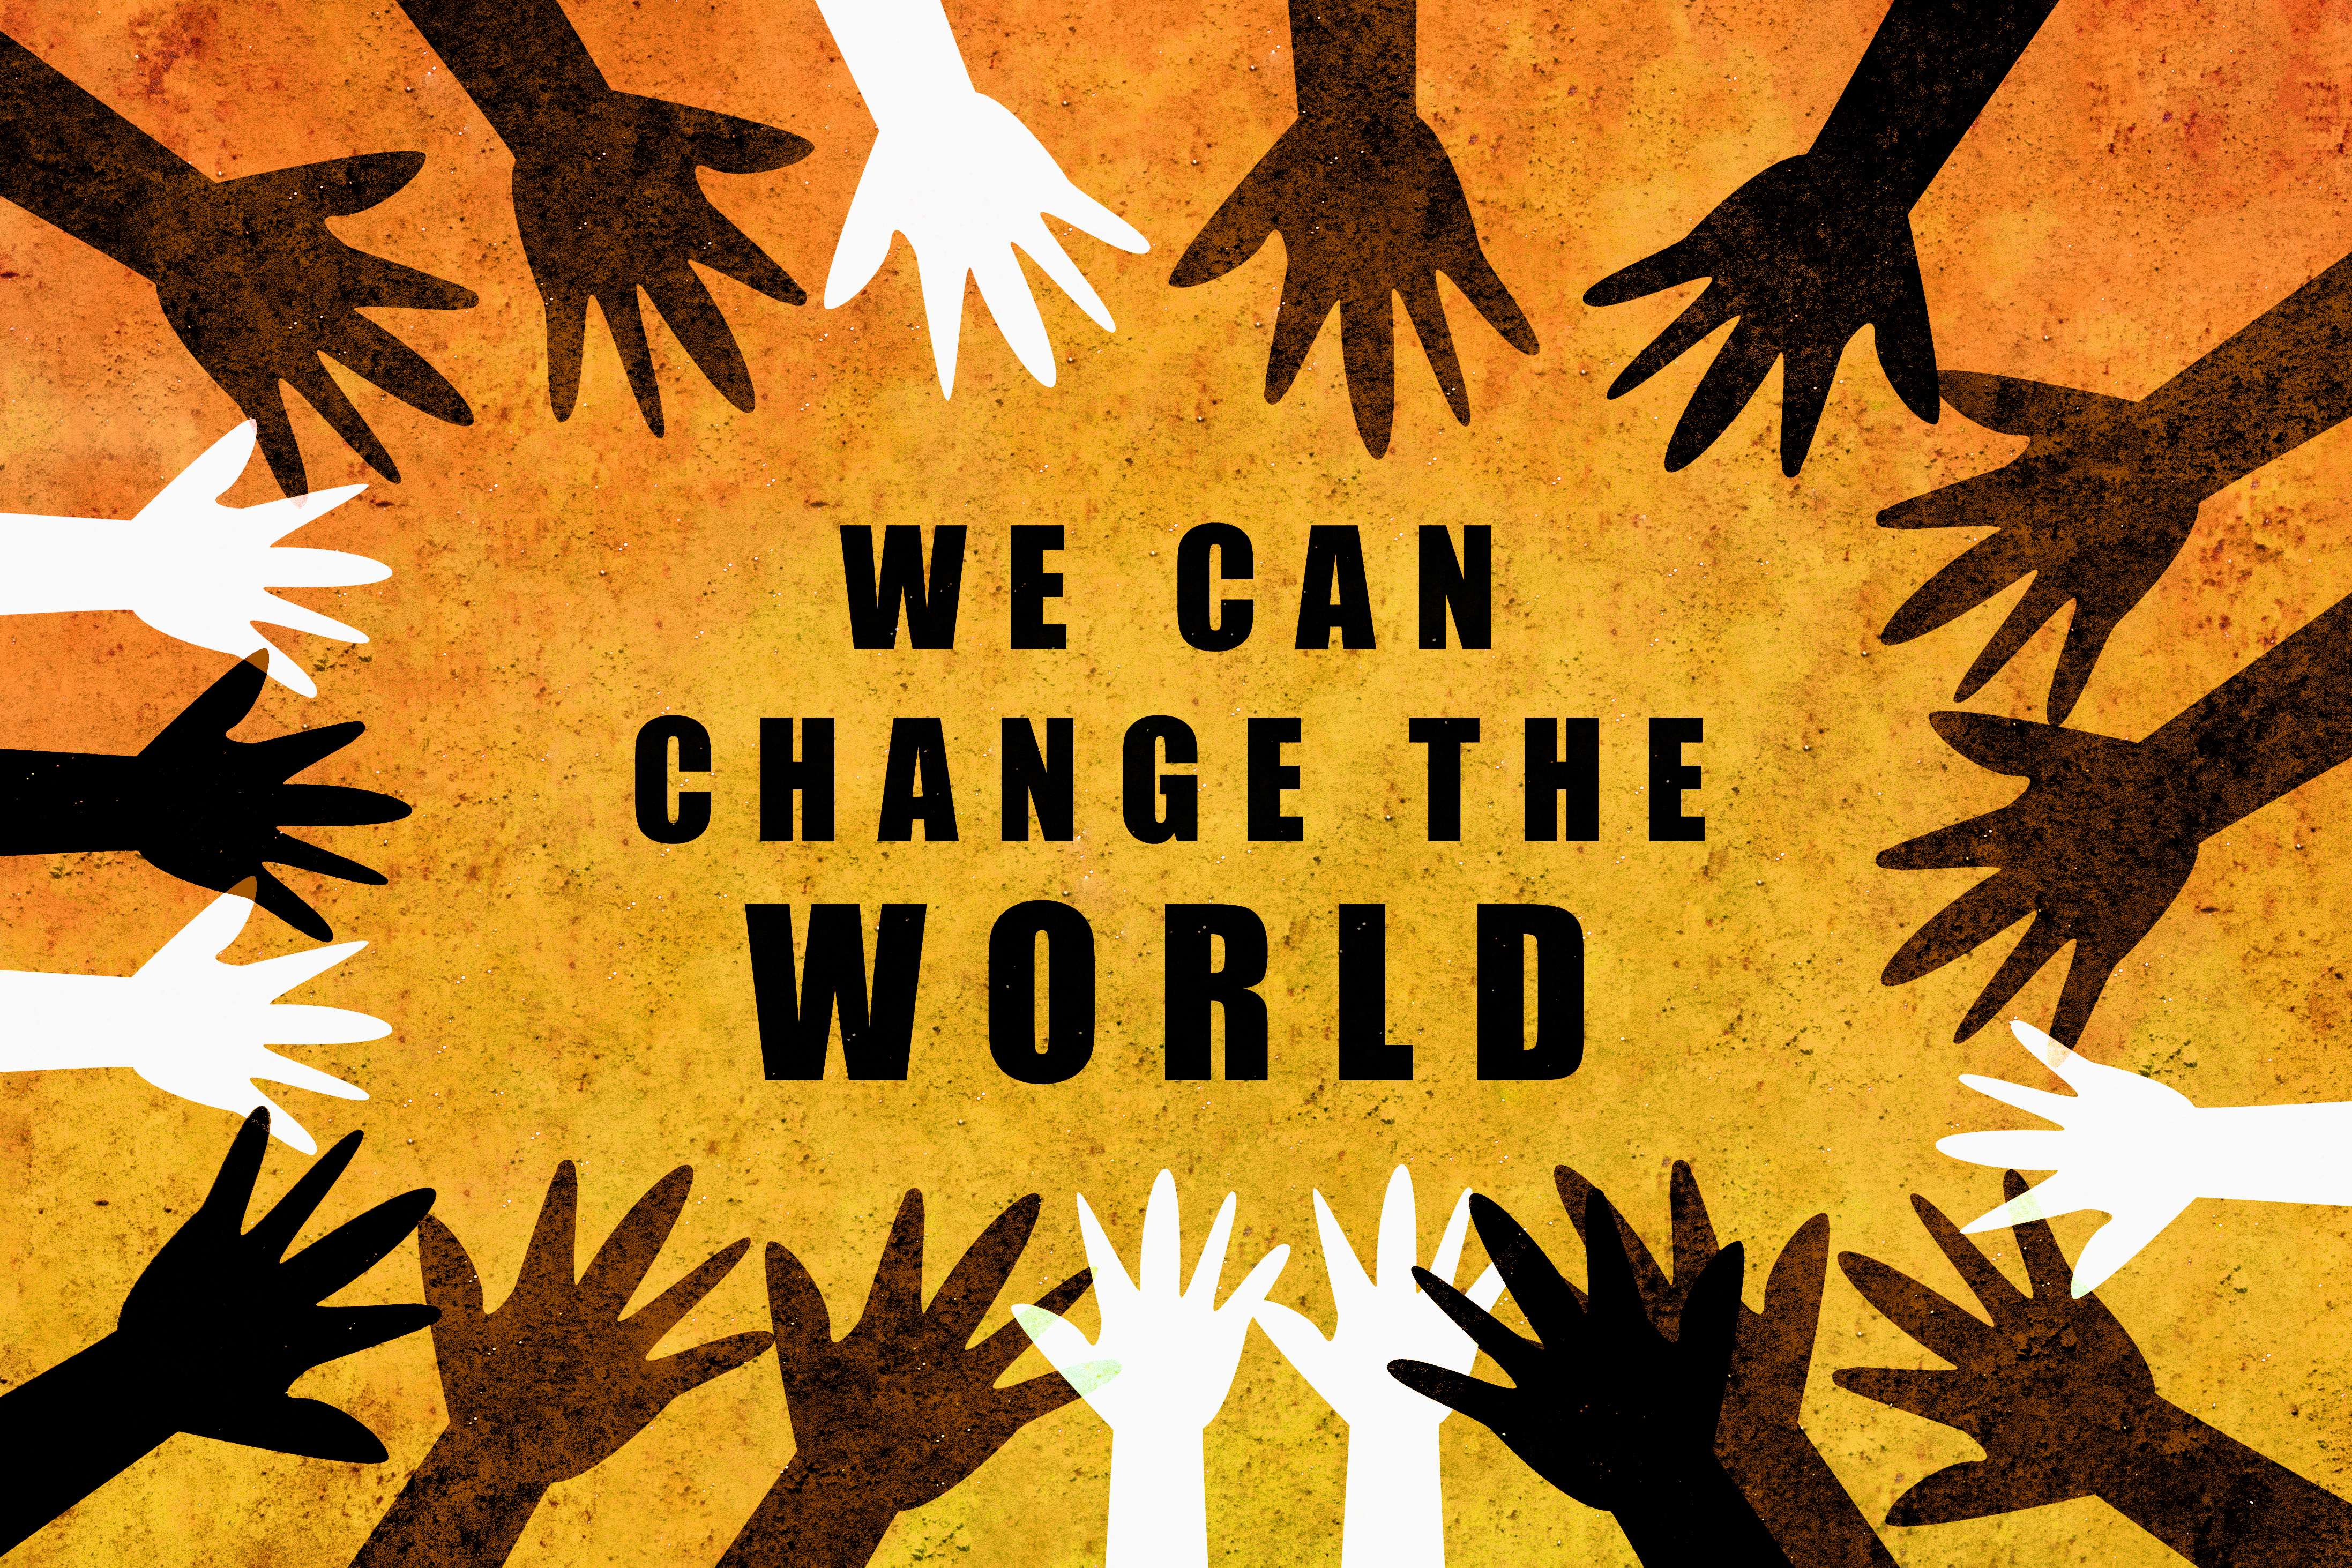 hands we can change the world